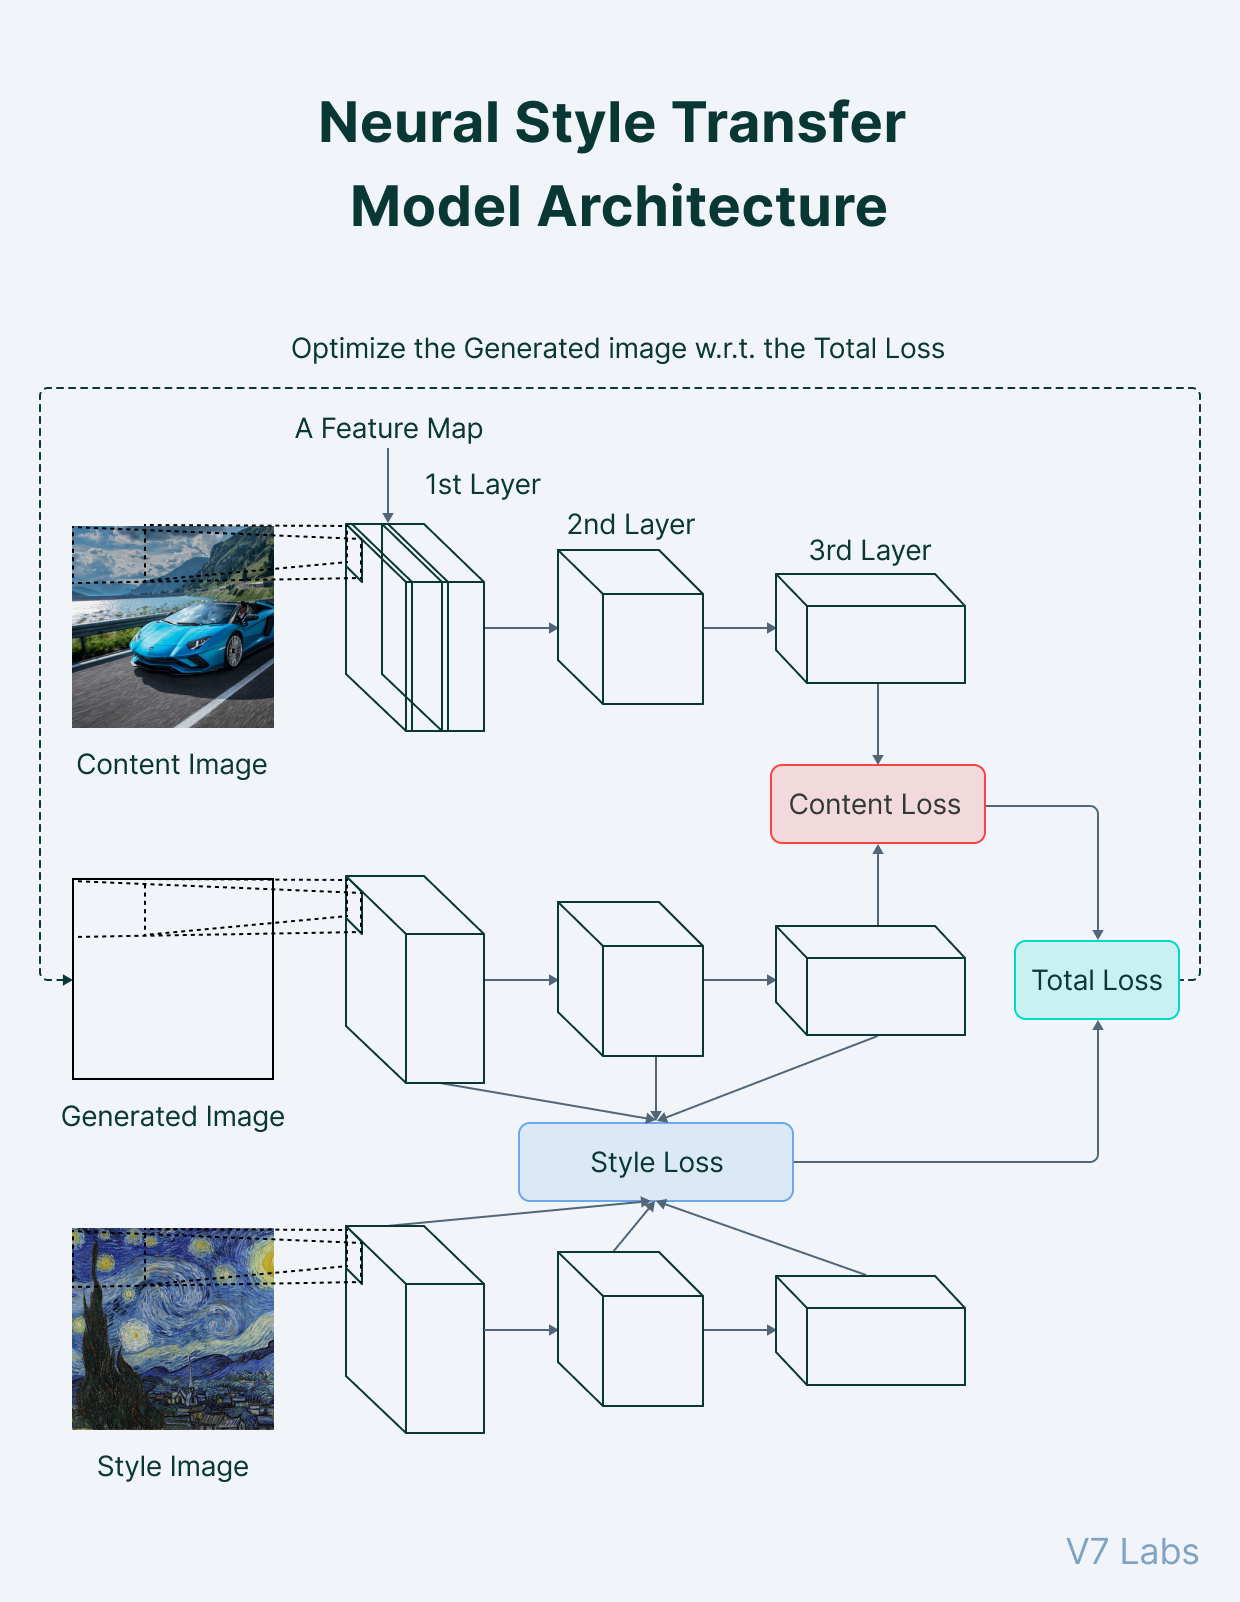 Neural style transfer model architecture